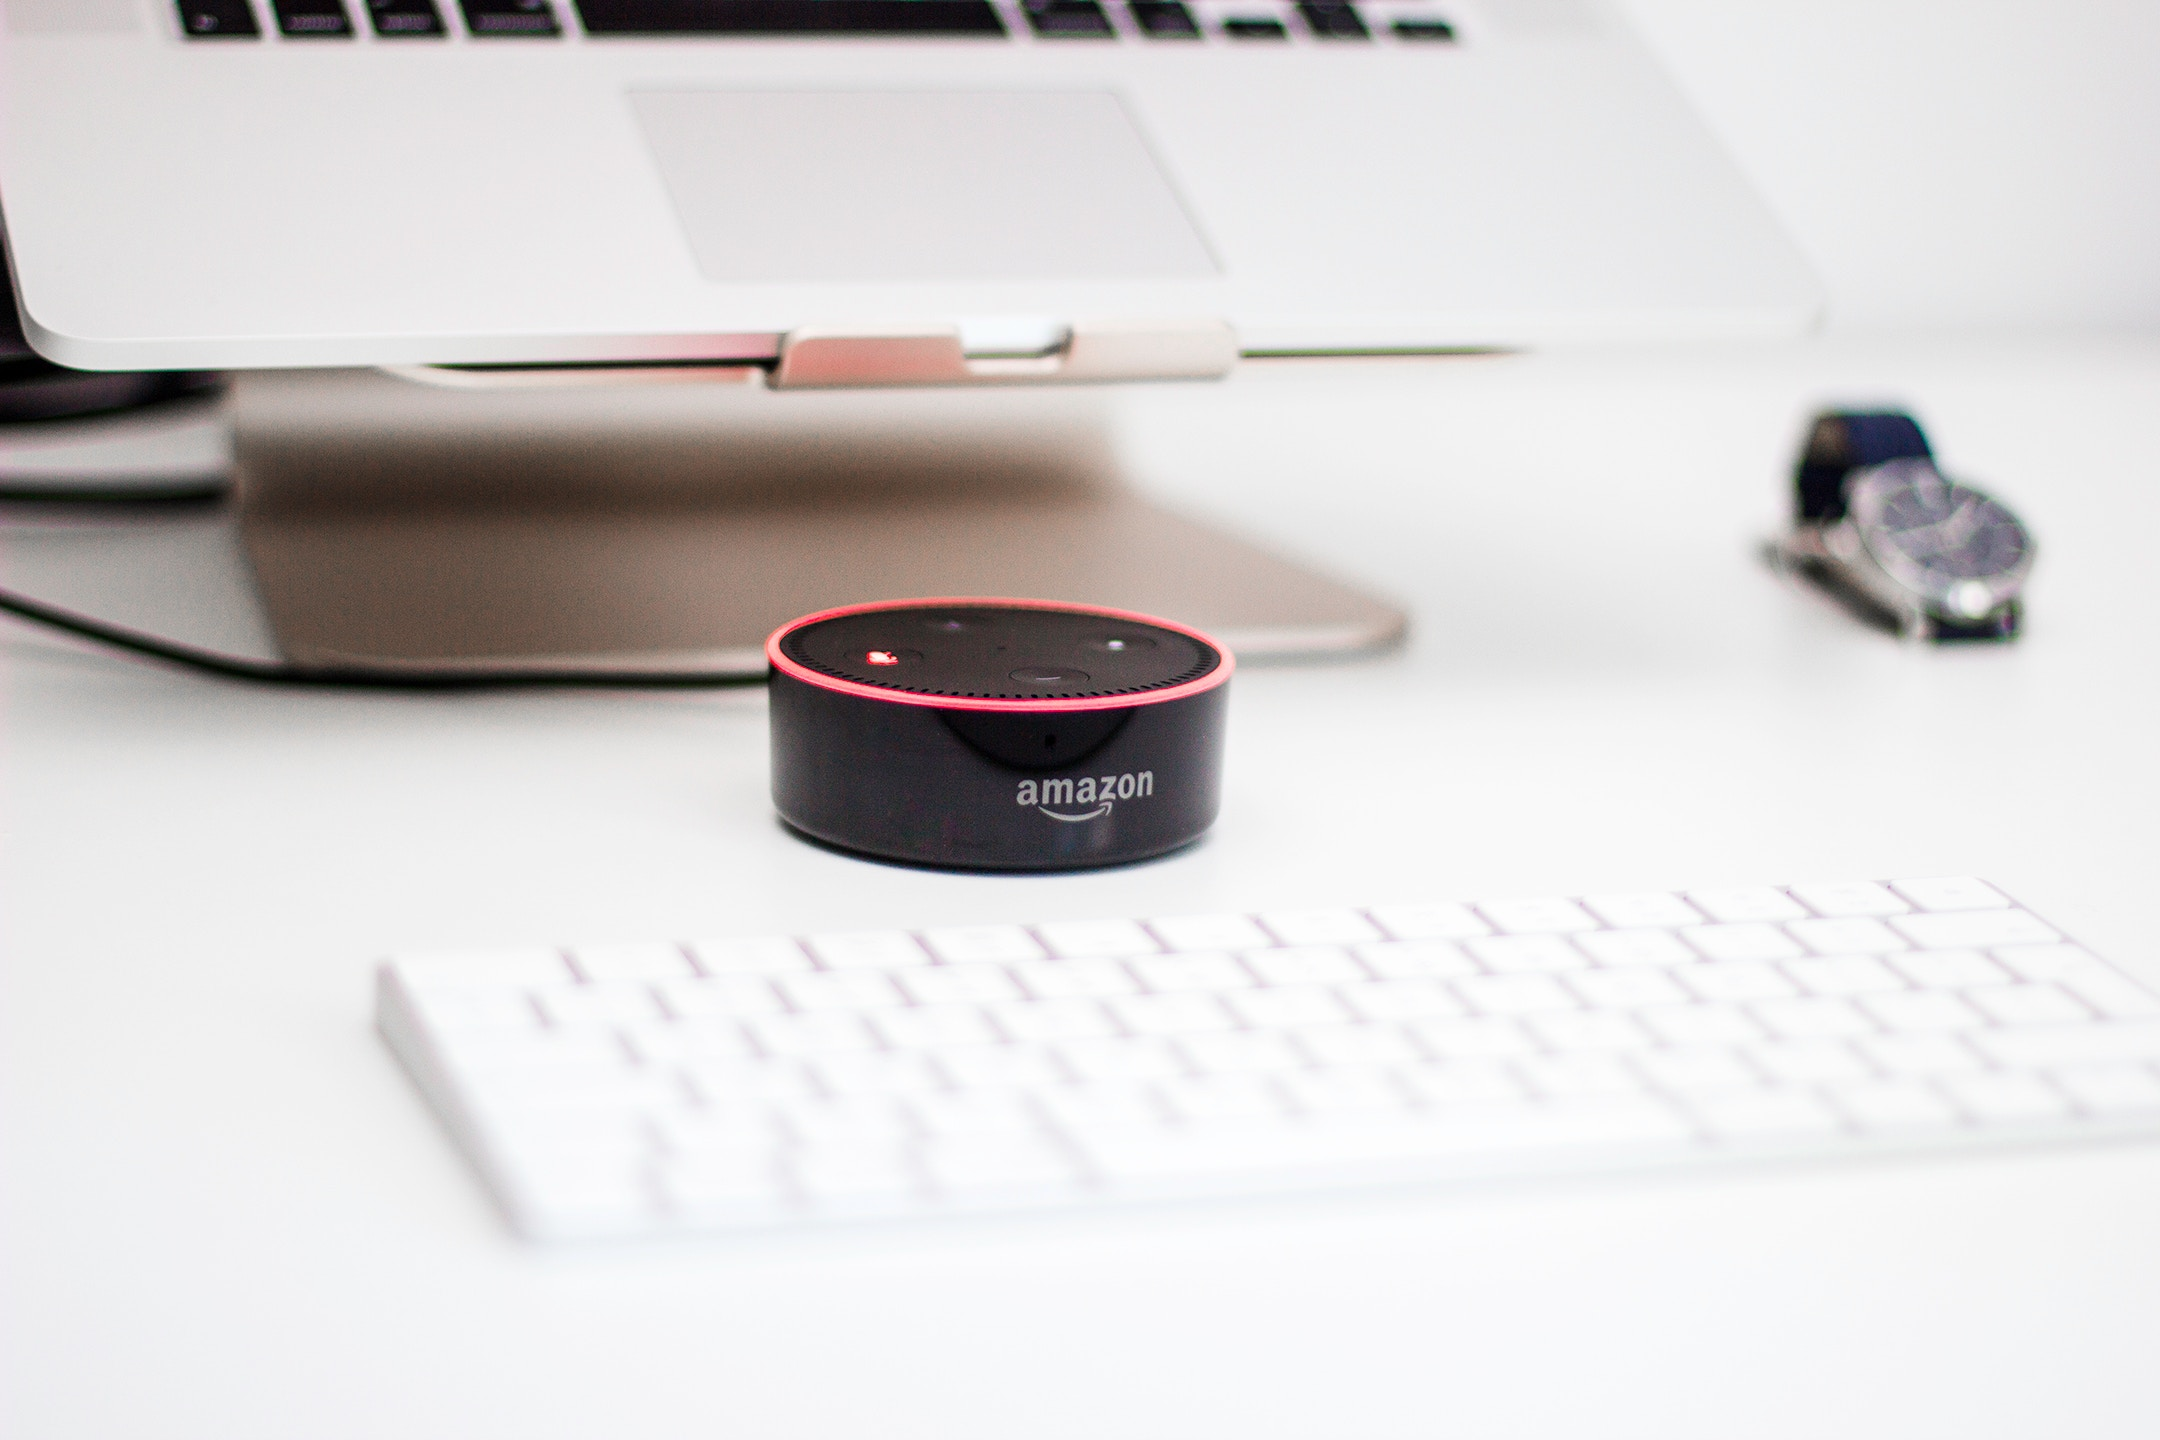 Errant Alexa Communications Are Rare. The Benefit of Voice in Healthcare is Real